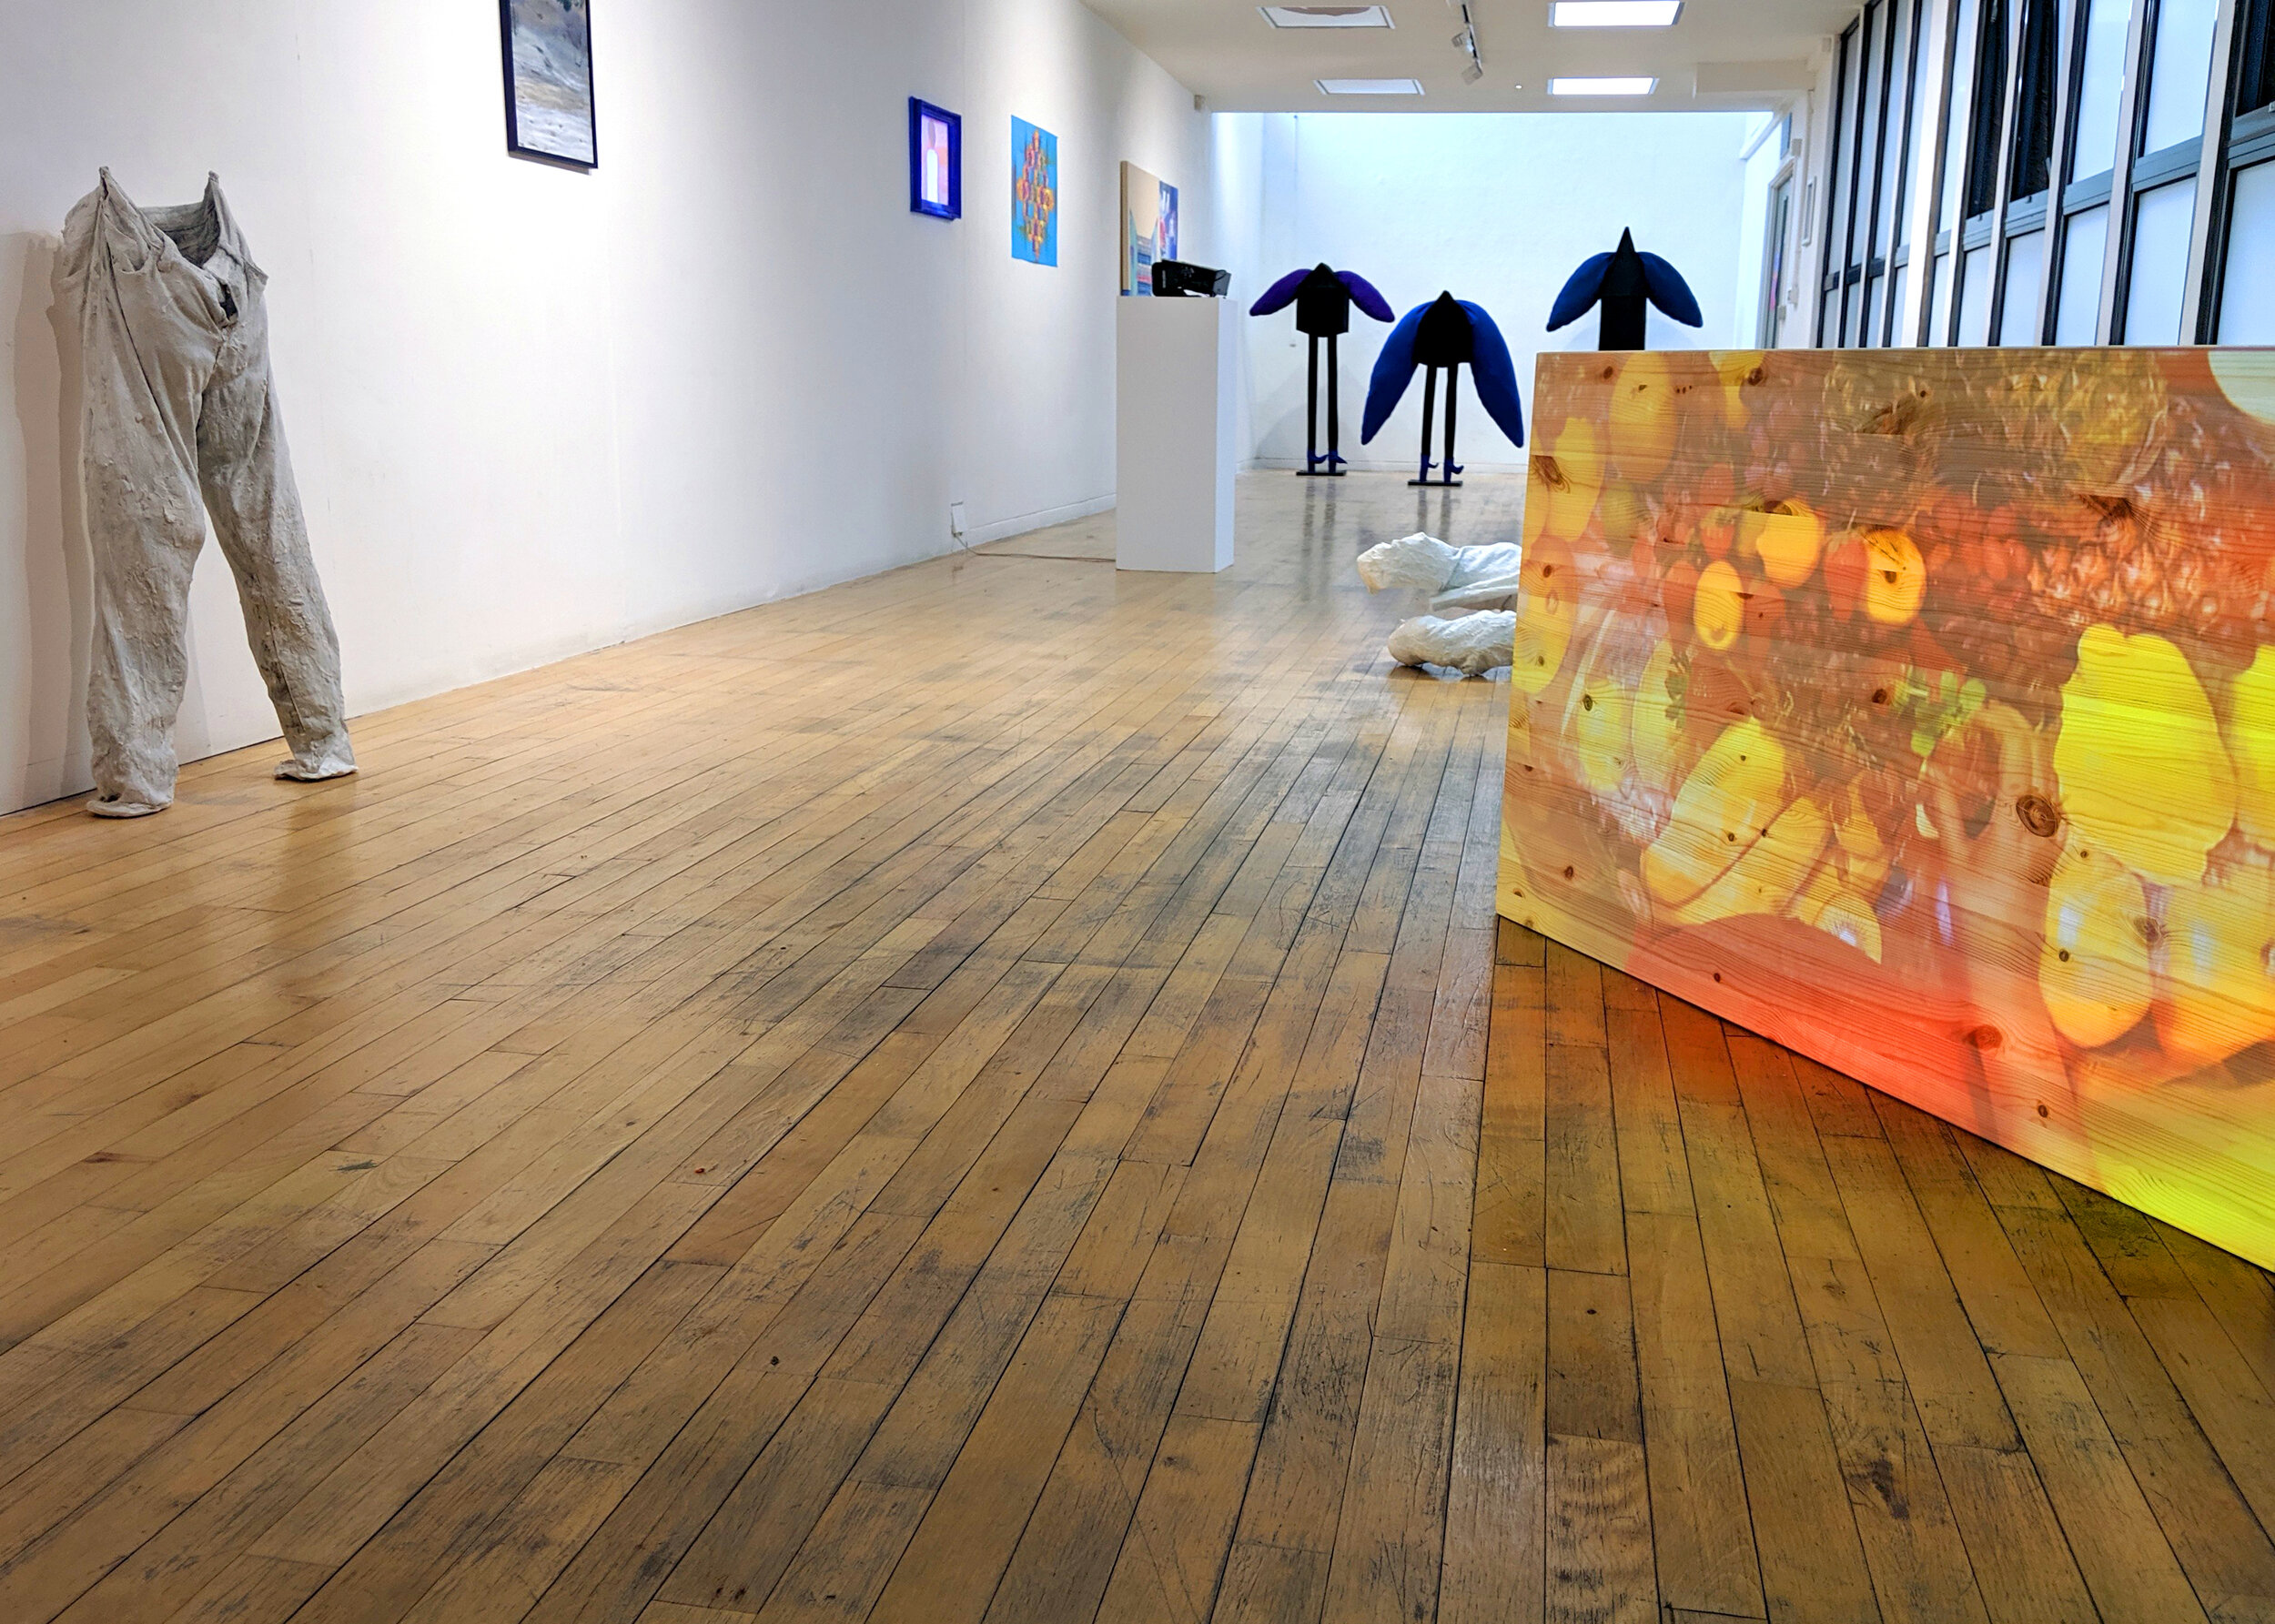 Kitchen Table, shown as projection on pine table, NCL LDN, group show, Long Gallery and Ex Libris, Hatton Gallery, Newcastle.